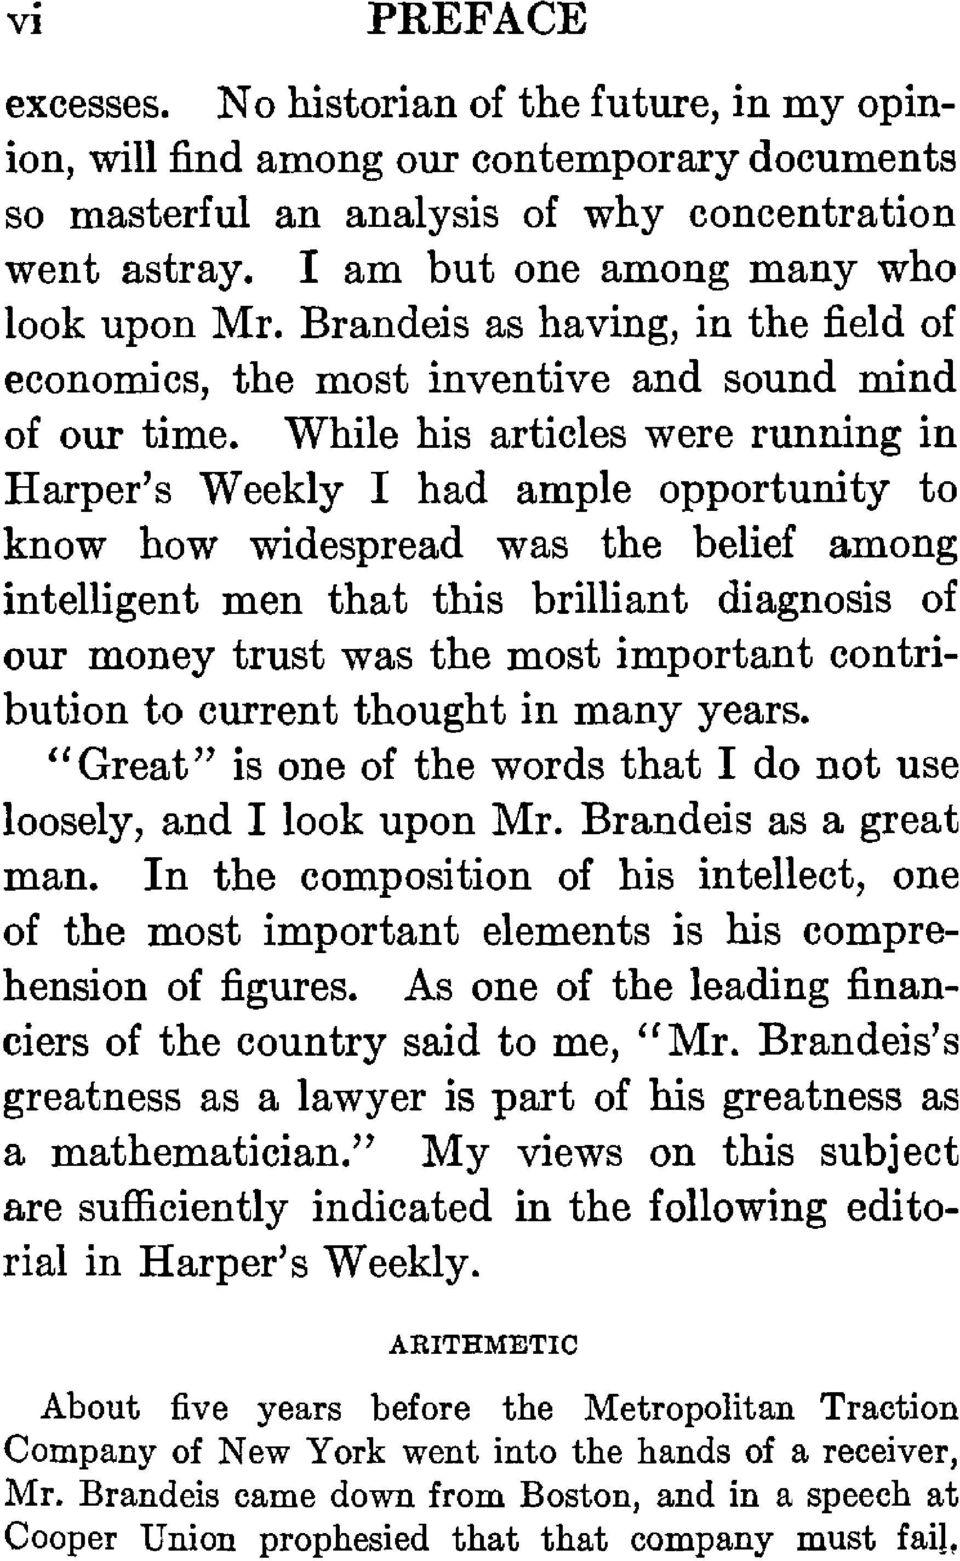 While his articles were running in Harper's Weekly I had ample opportunity to know how widespread was the belief among intelligentmen that this brilliant diagnosis of our money trust was the most